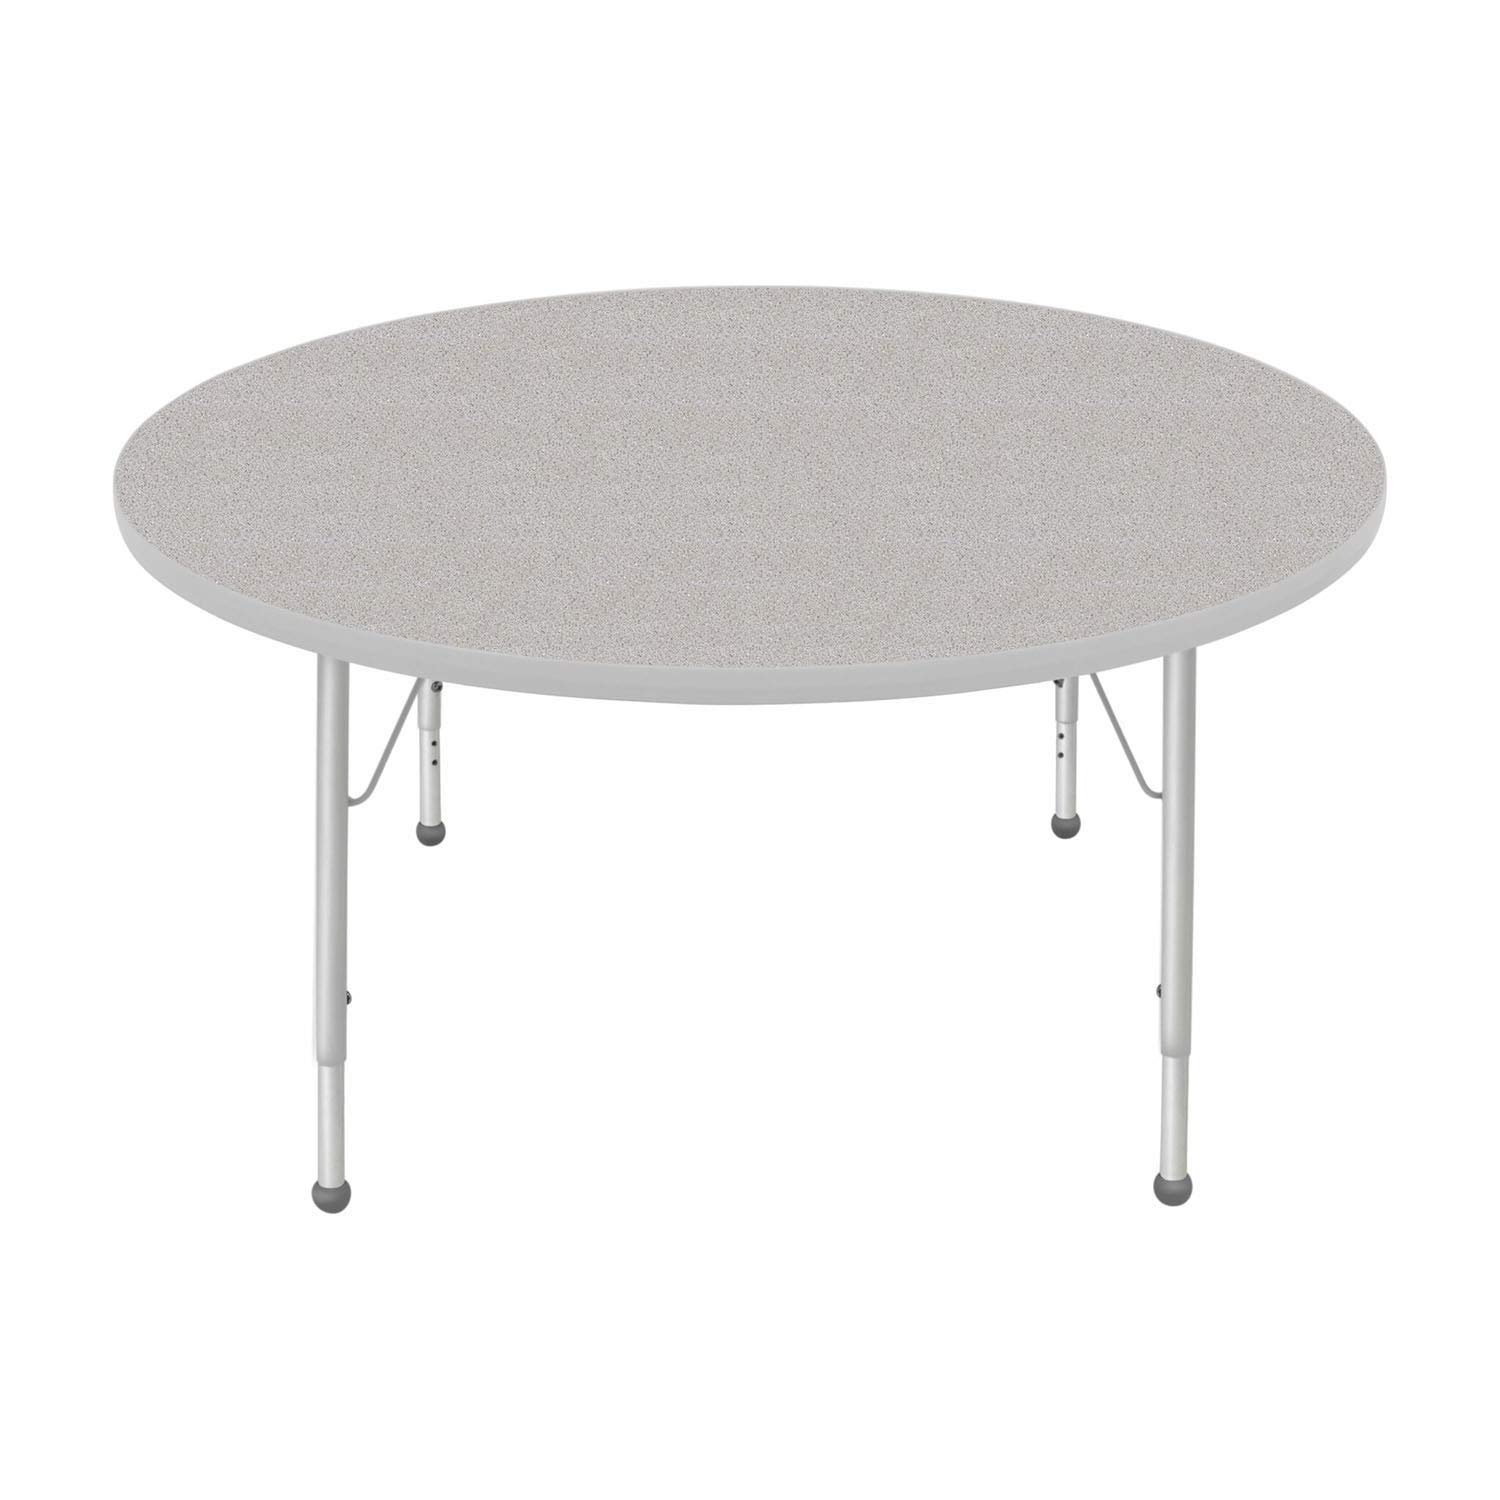 Creative Colors 48 Round Activity Table with Gray Nebula Top Platinum Silver Edge Ball Glide Standard Leg Height: 21-30